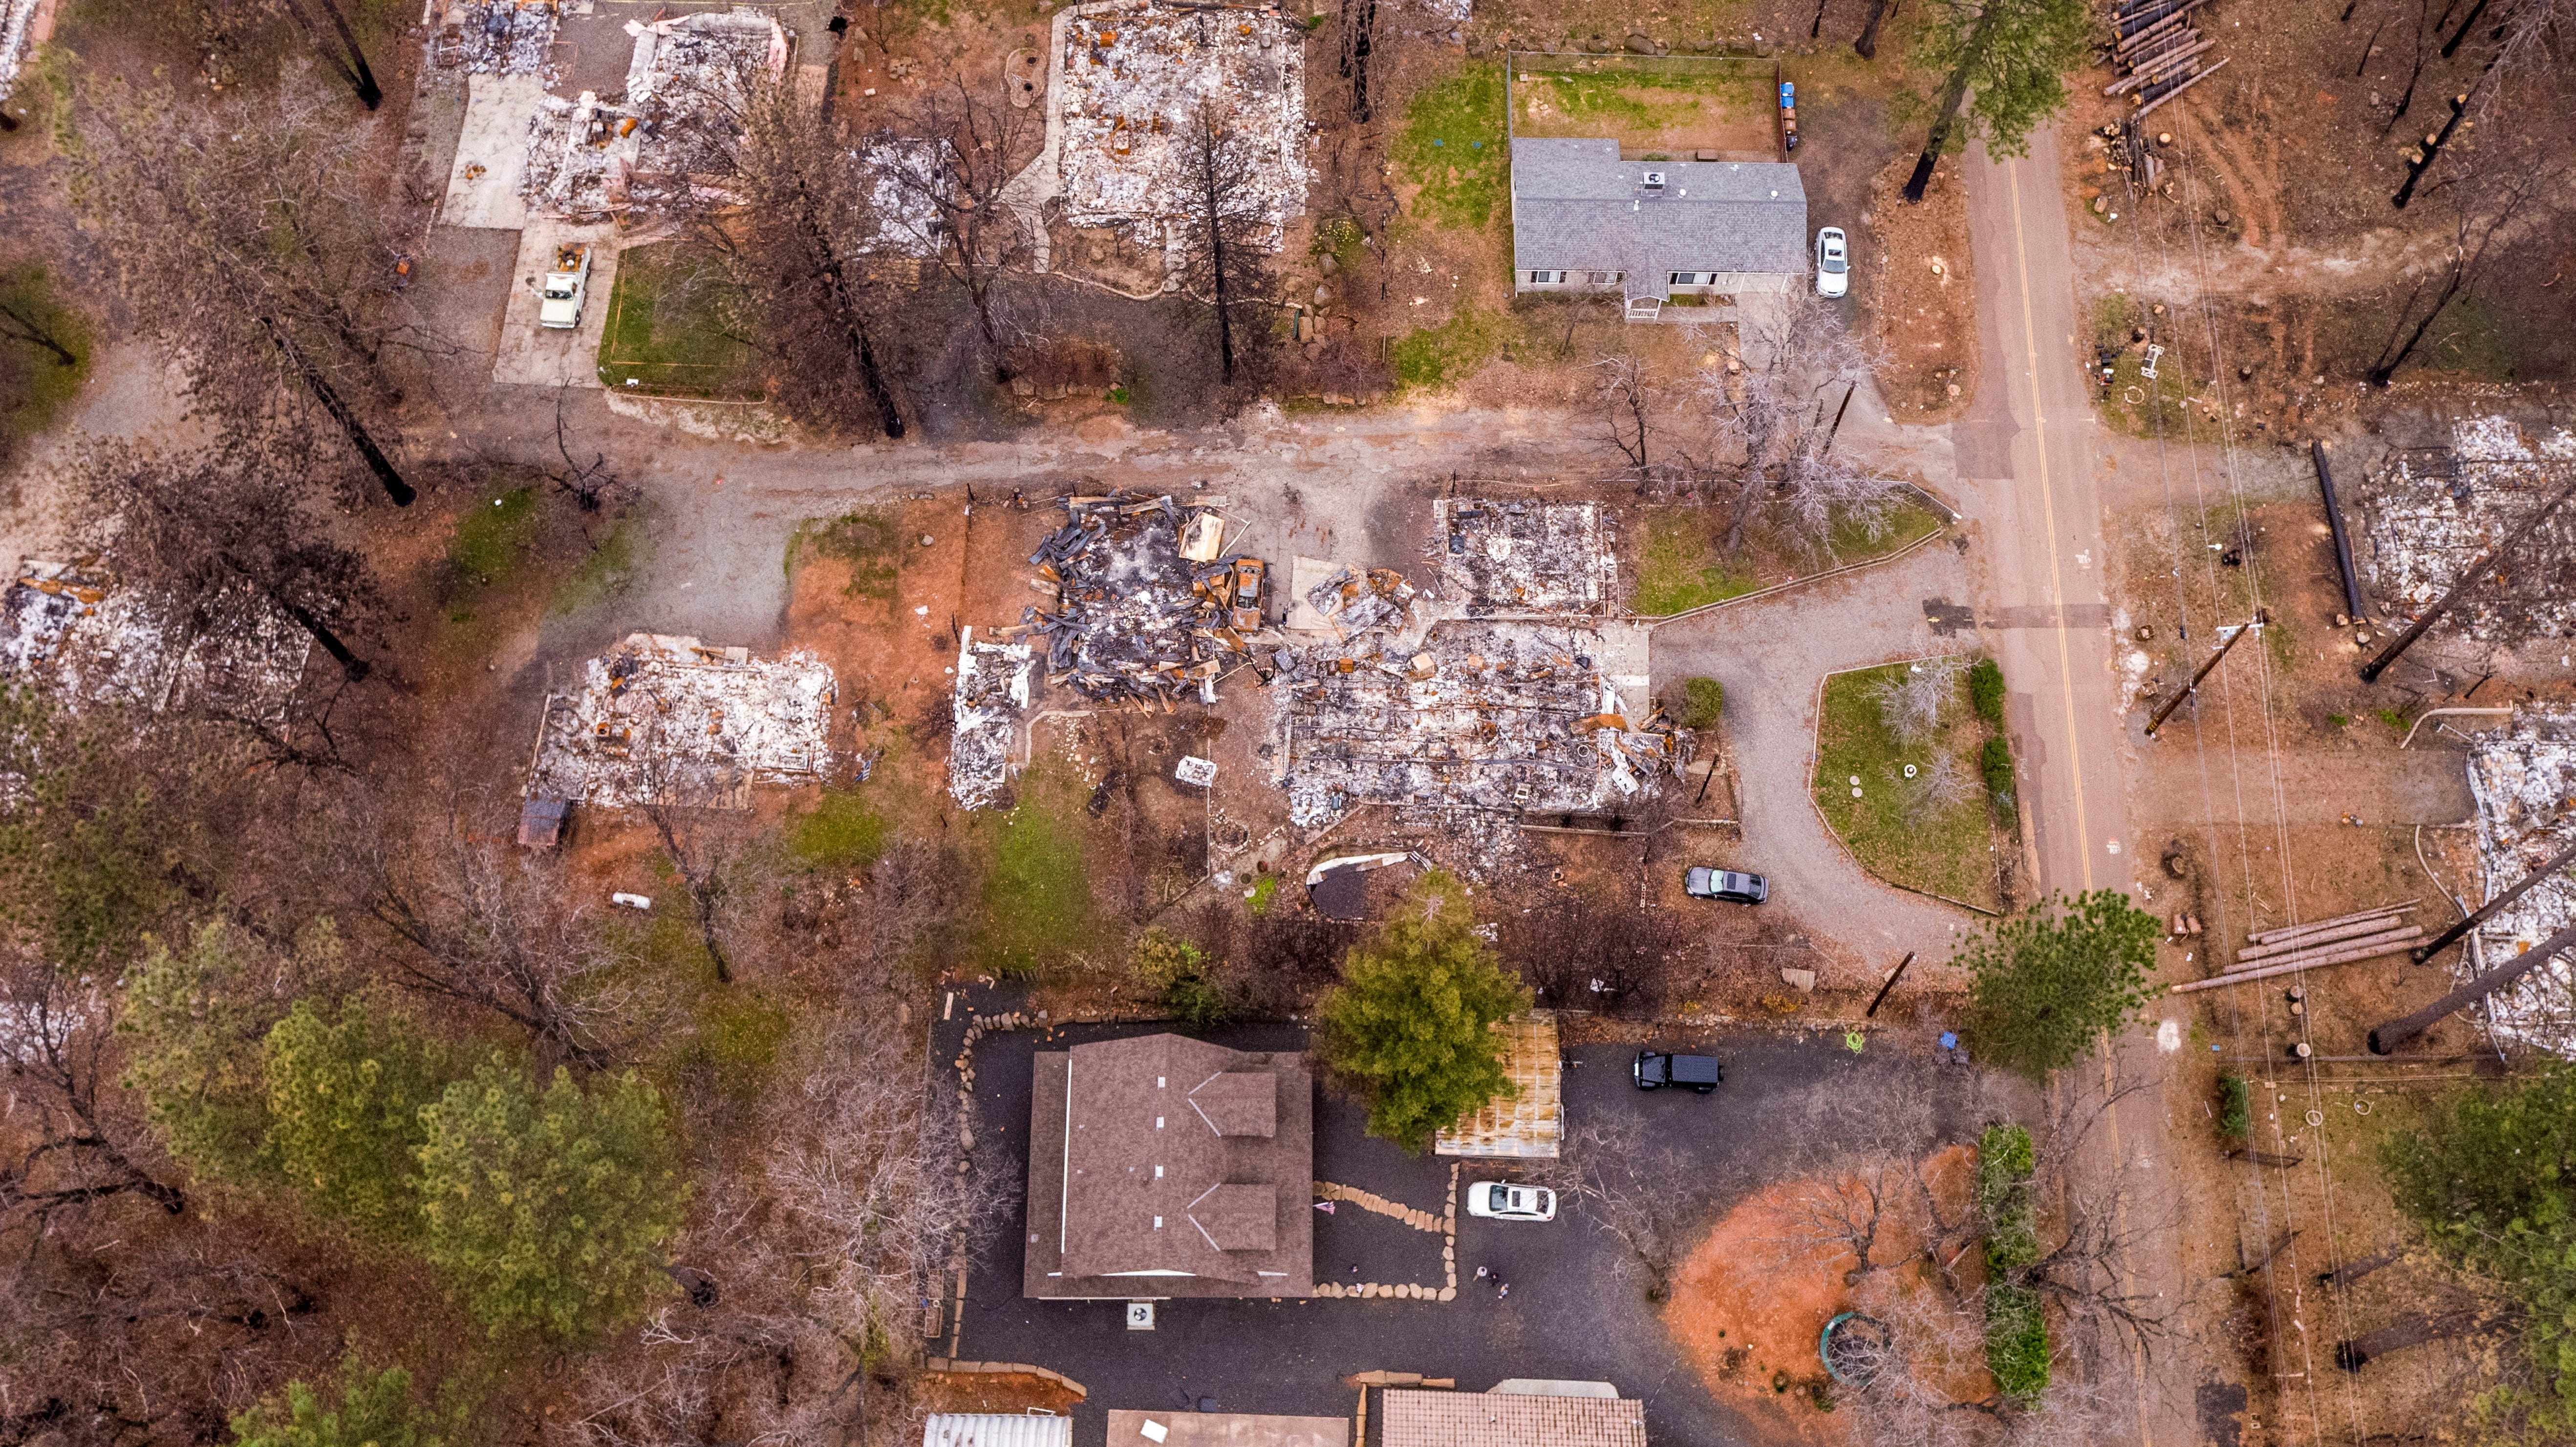 A aerial image shows the home of Sean and Dawn Herr, bottom center, in Paradise on Tuesday, March 19, 2019. The Herr home, built in 2010 to new fire-resistant building standards, survived the fire while nearby homes burned.